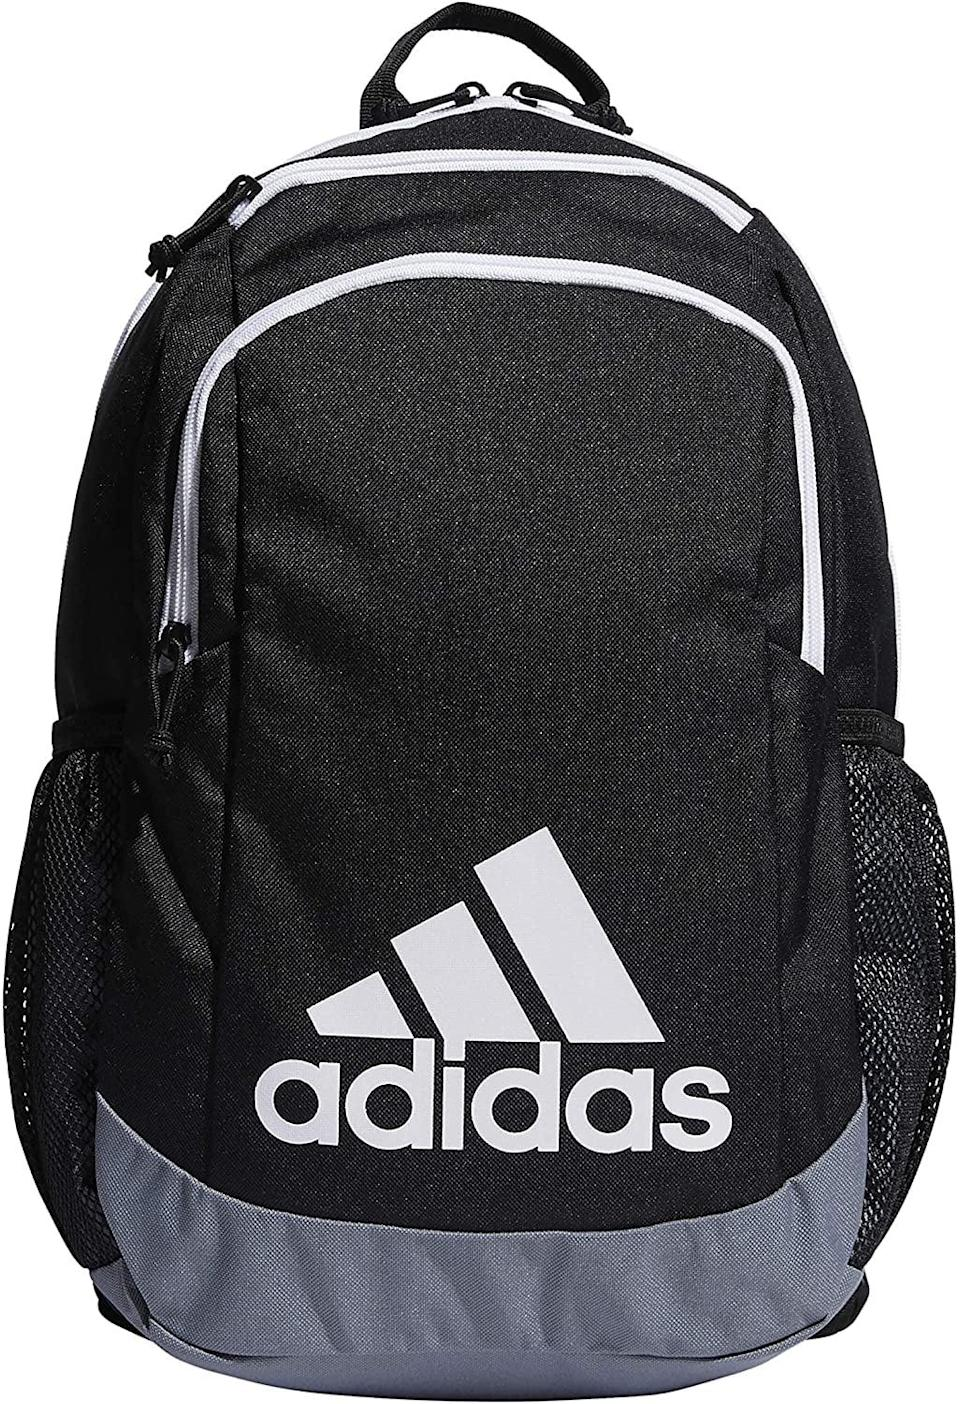 <p>The <span>adidas Youth Kids-Boy's/Girl's Young Creator Backpack</span> ($35, originally $40) is perfect for your child's academic life and after school practice. It's so stylish and sleek, anyone can use it! It has a roomy main compartment and a big pocket on the outside for larger items along with two zip pockets for snacks and small gear. </p>